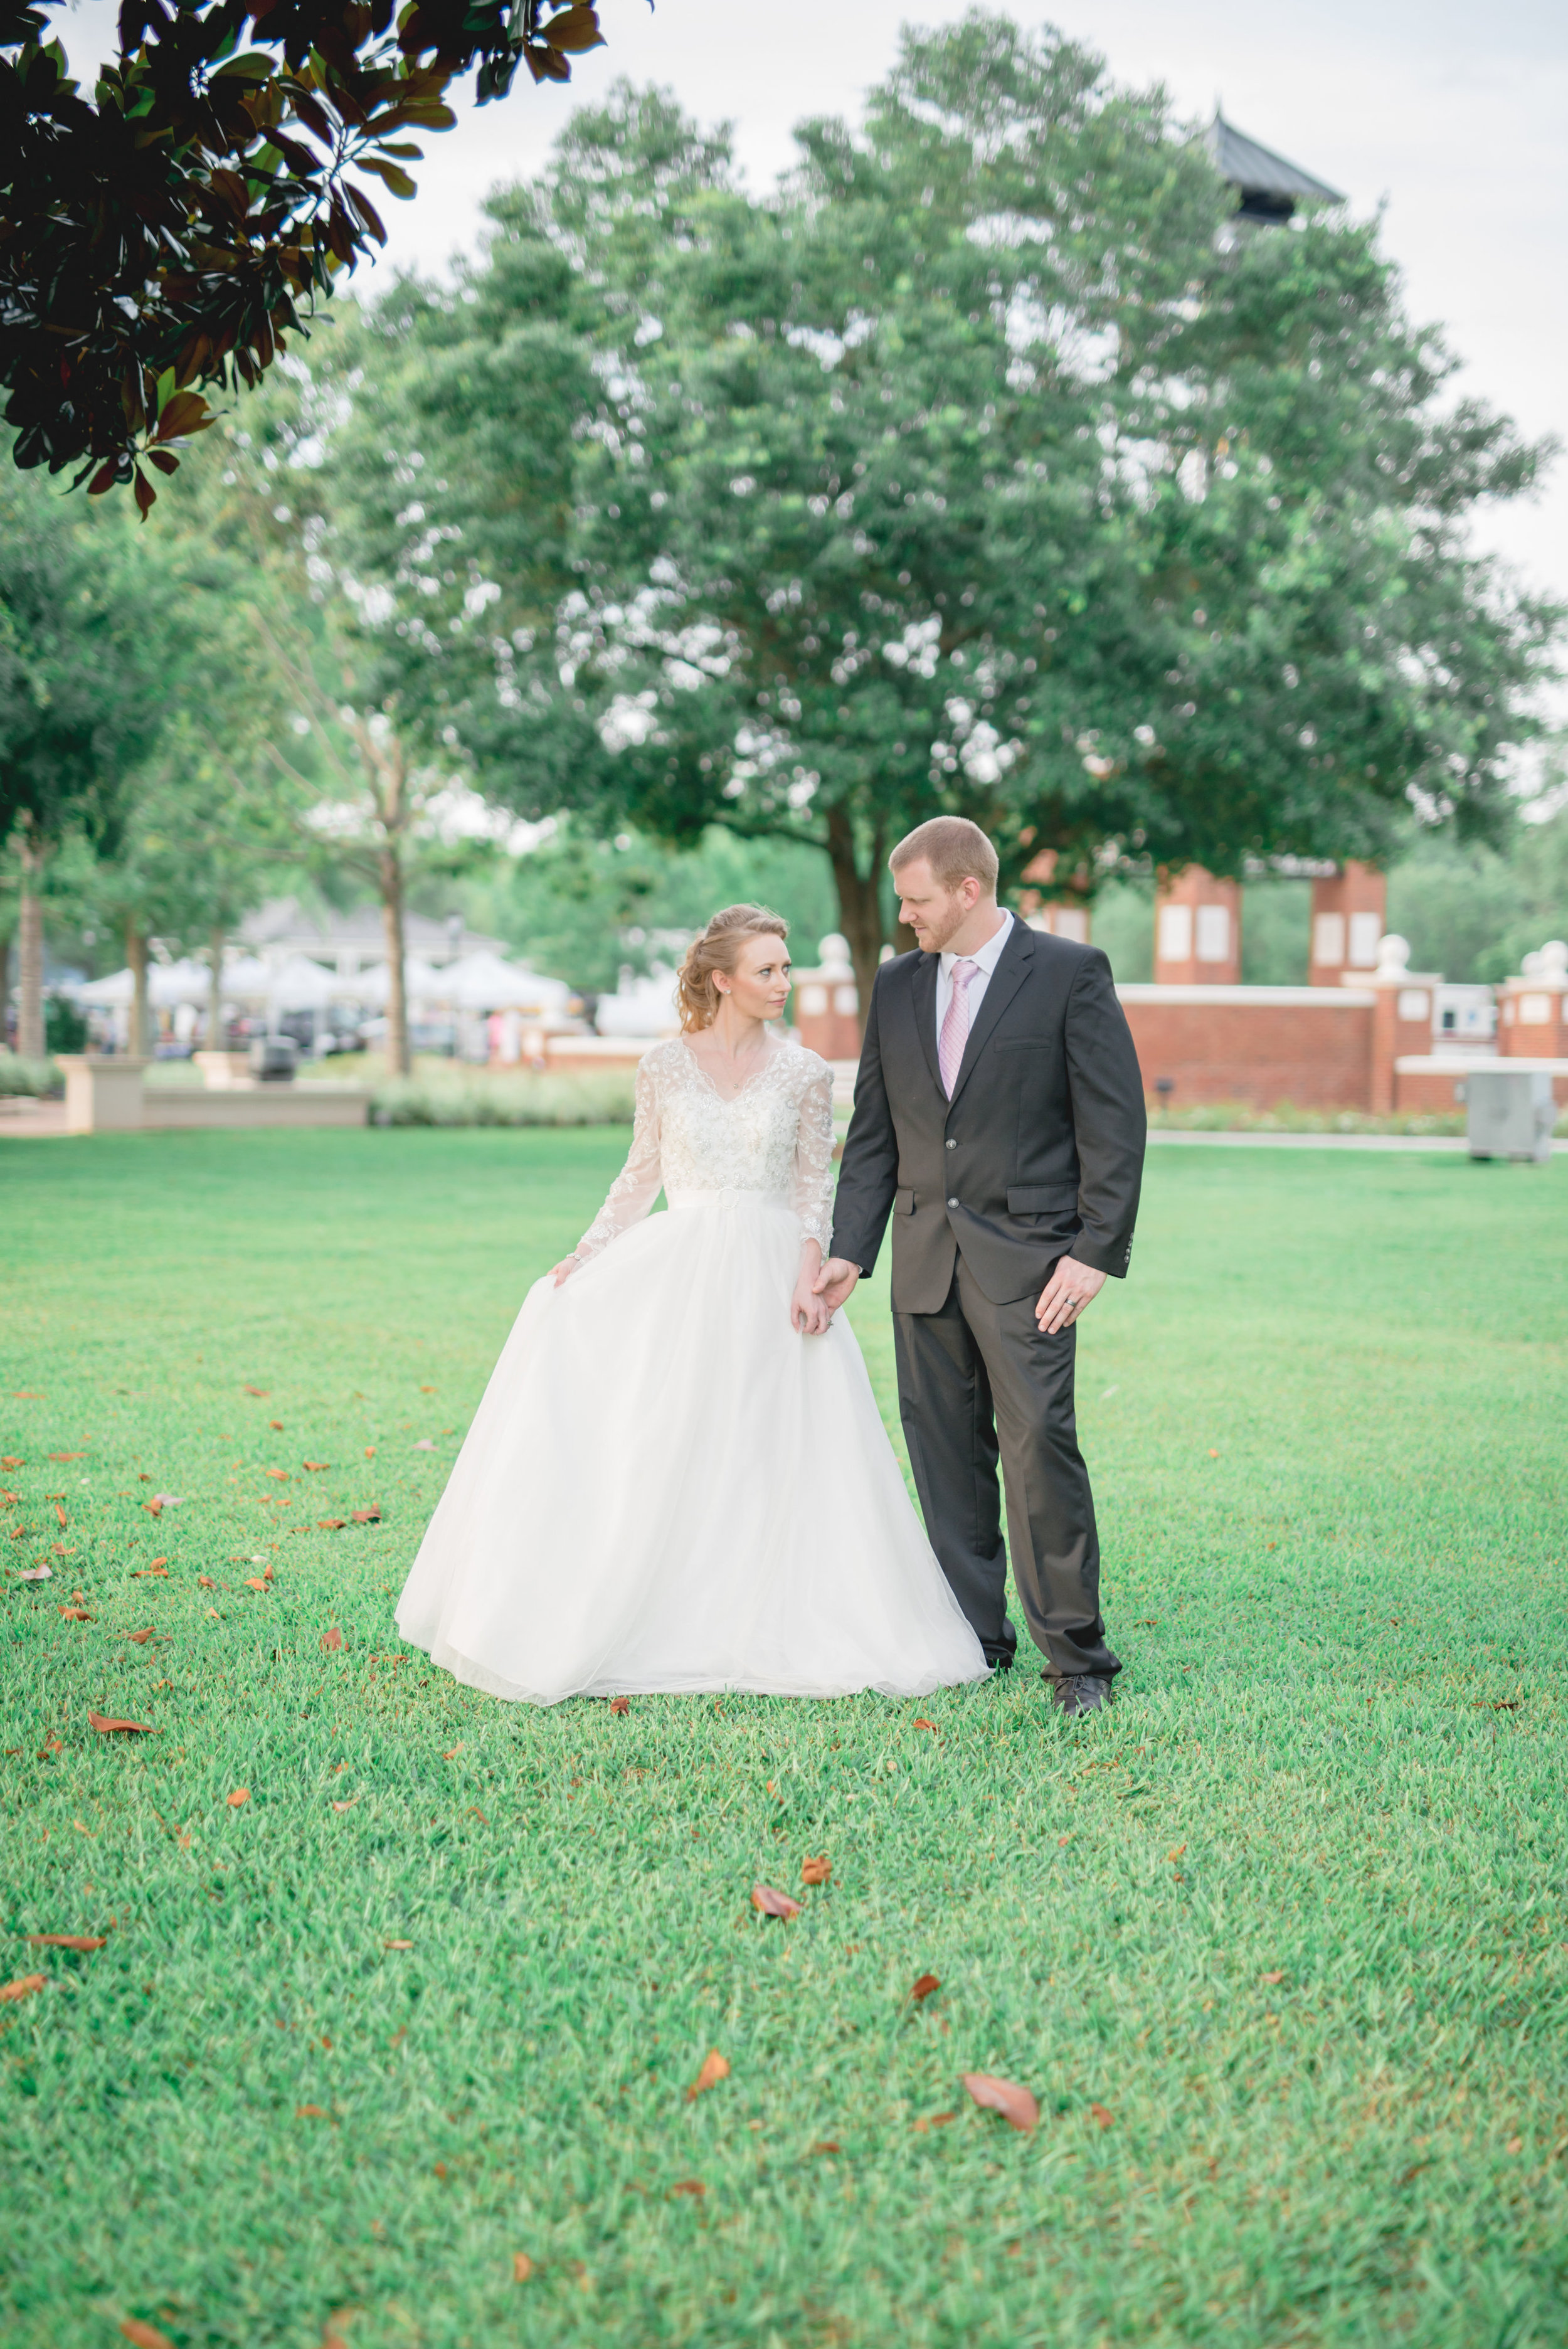 All The Love (Bride and Groom )-0062.jpg